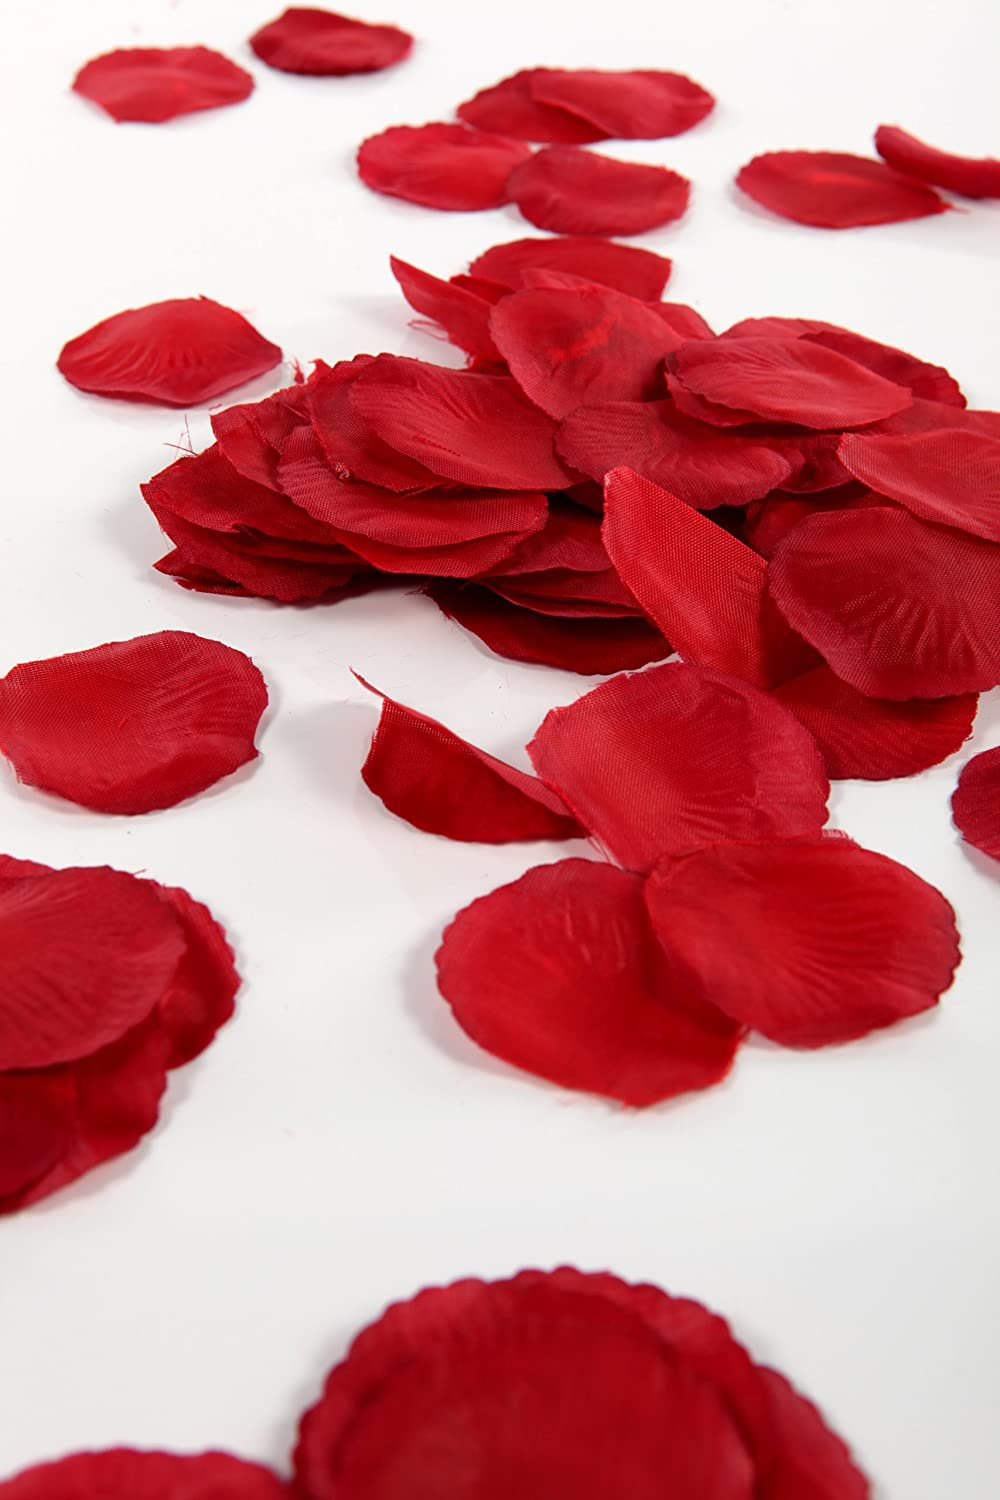 300 deep red silk rose petals great for valentines amazon 300 deep red silk rose petals great for valentines amazon kitchen home mightylinksfo